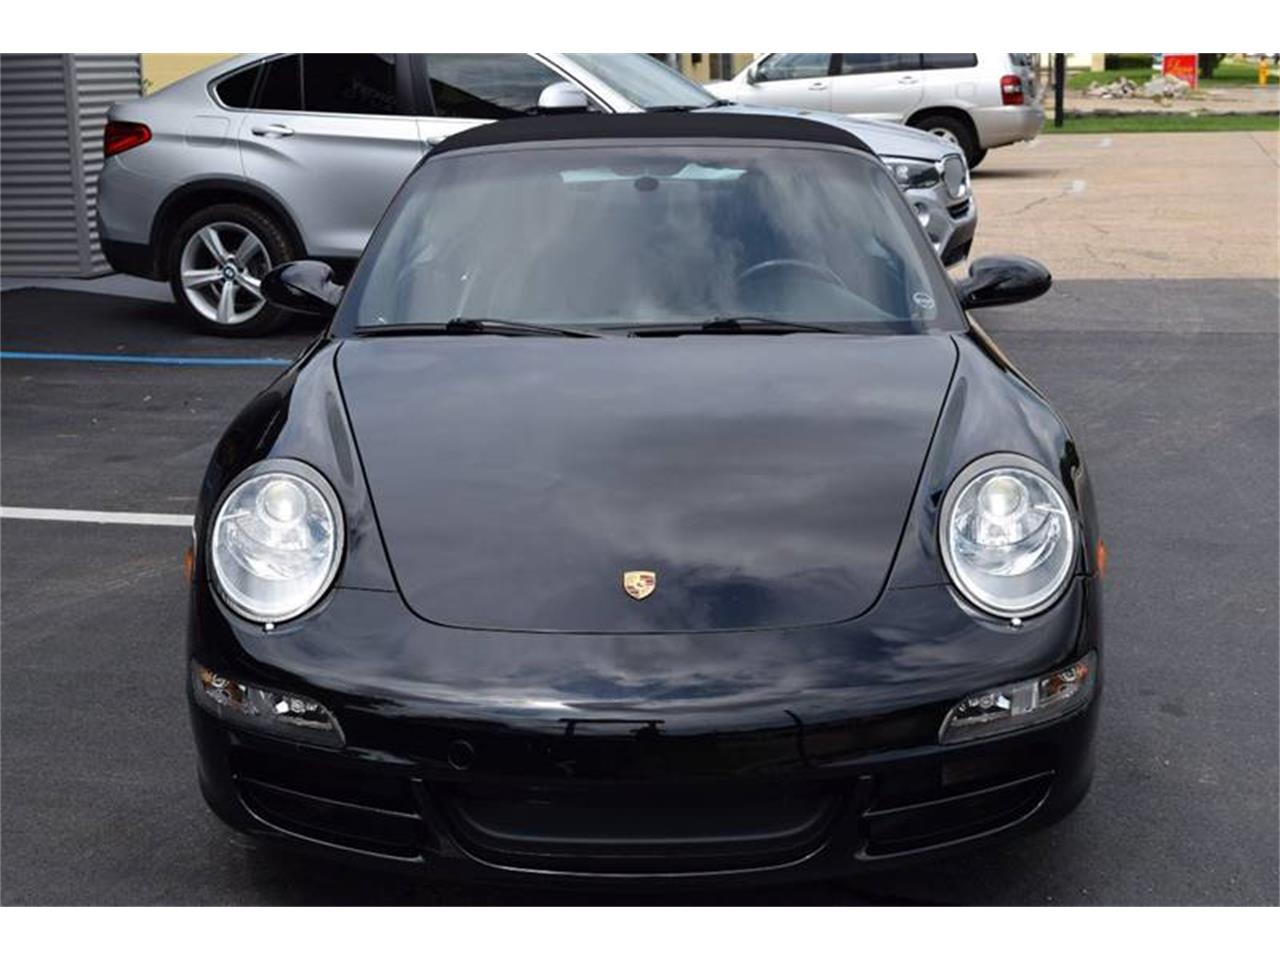 2006 Porsche 911 for sale in Biloxi, MS – photo 5